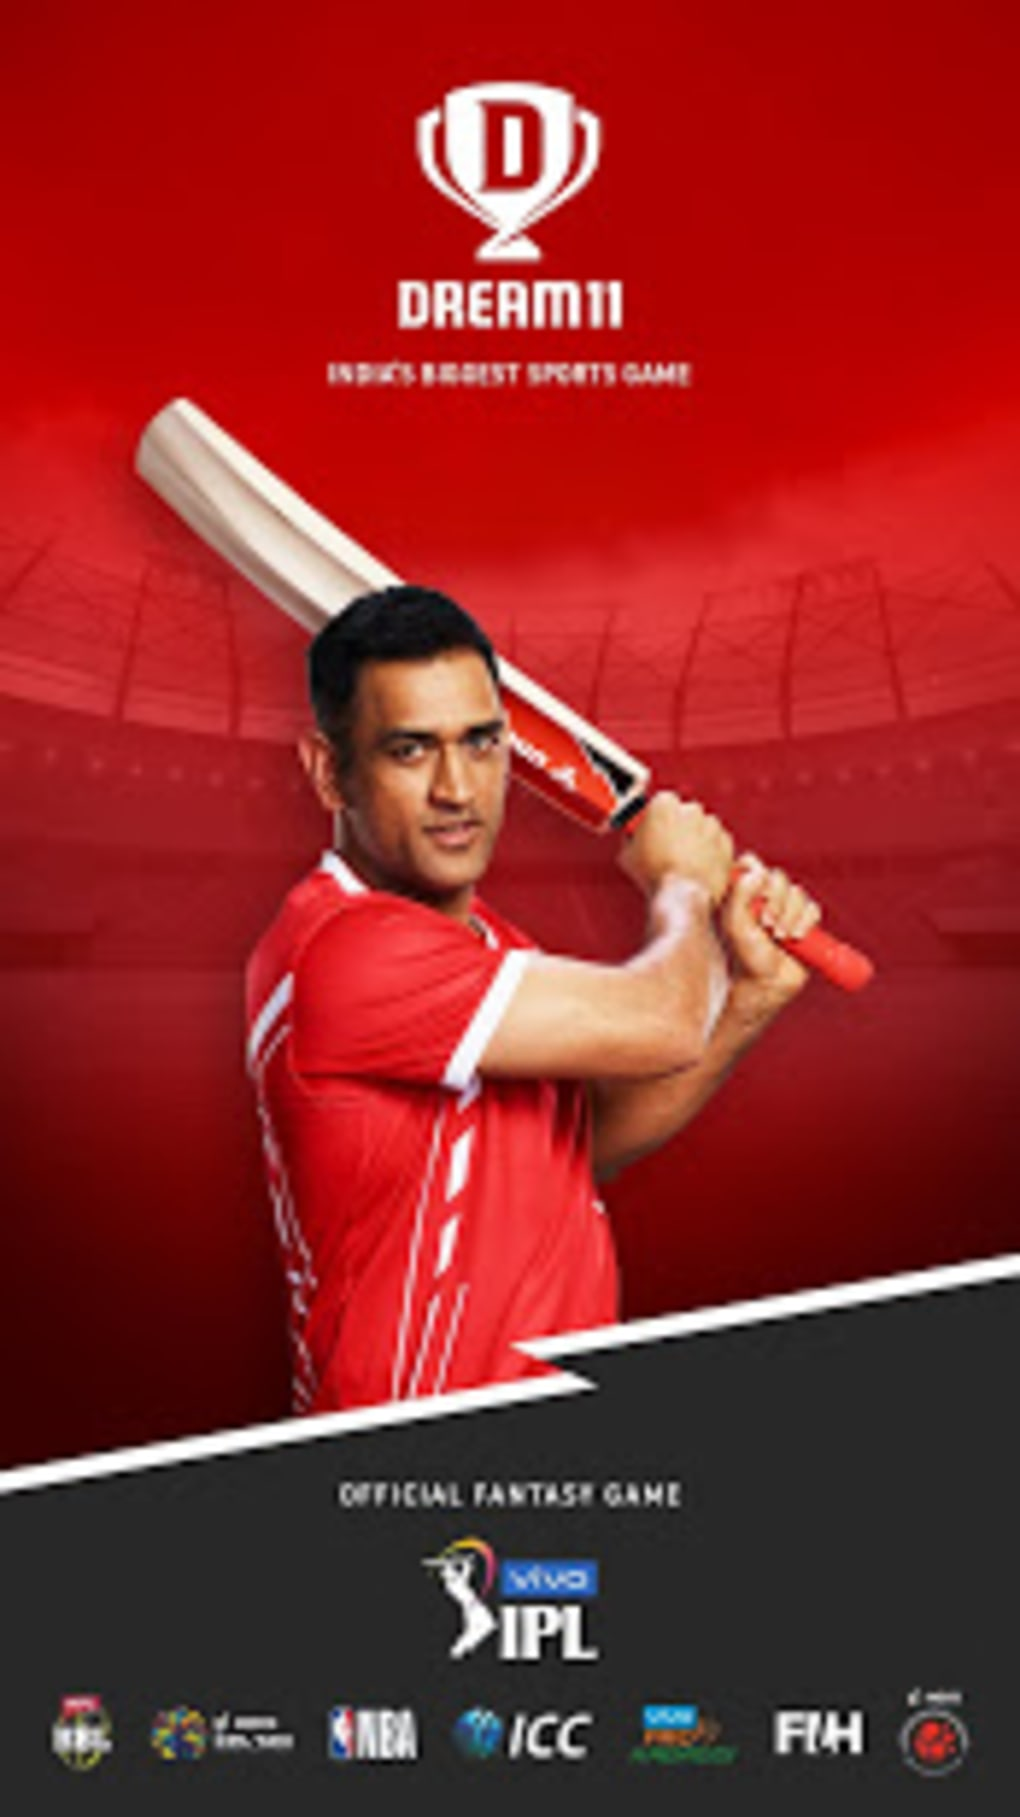 Dream11 Vivo IPL Official Partner Fantasy Sports for Android - Download